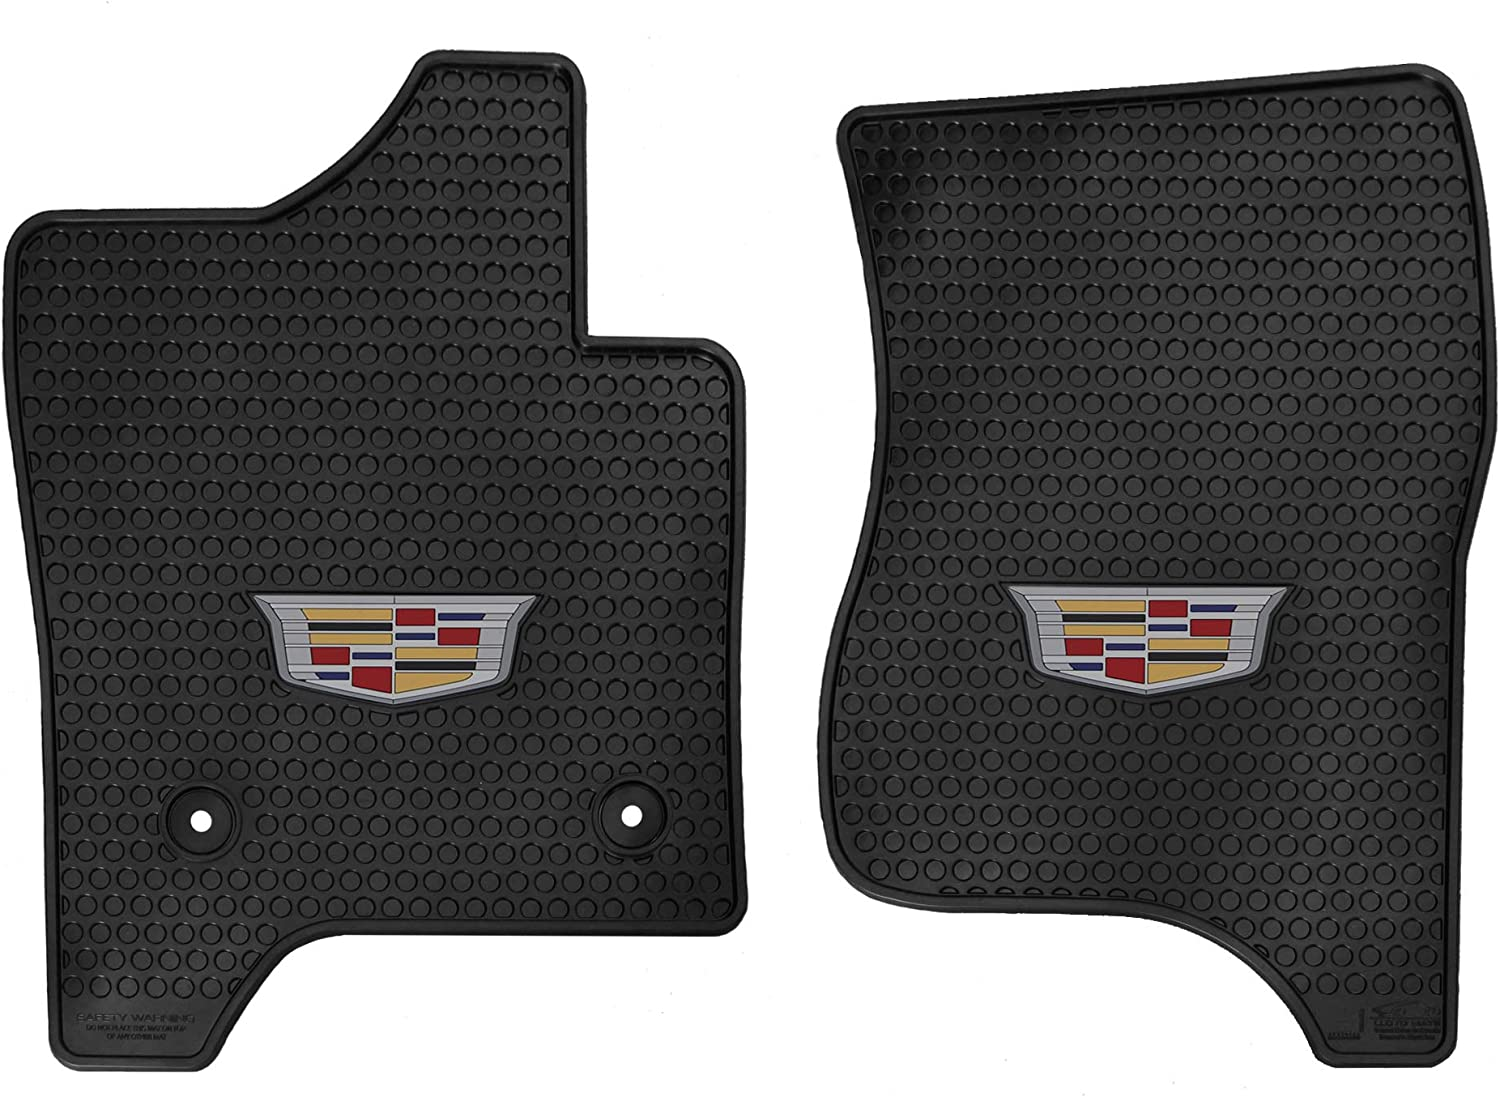 Lloyd Mats Signature Rubber All Weather Floor Mats for Cadillac Escalade 2015-2020 2PC Fronts Signature Rubber